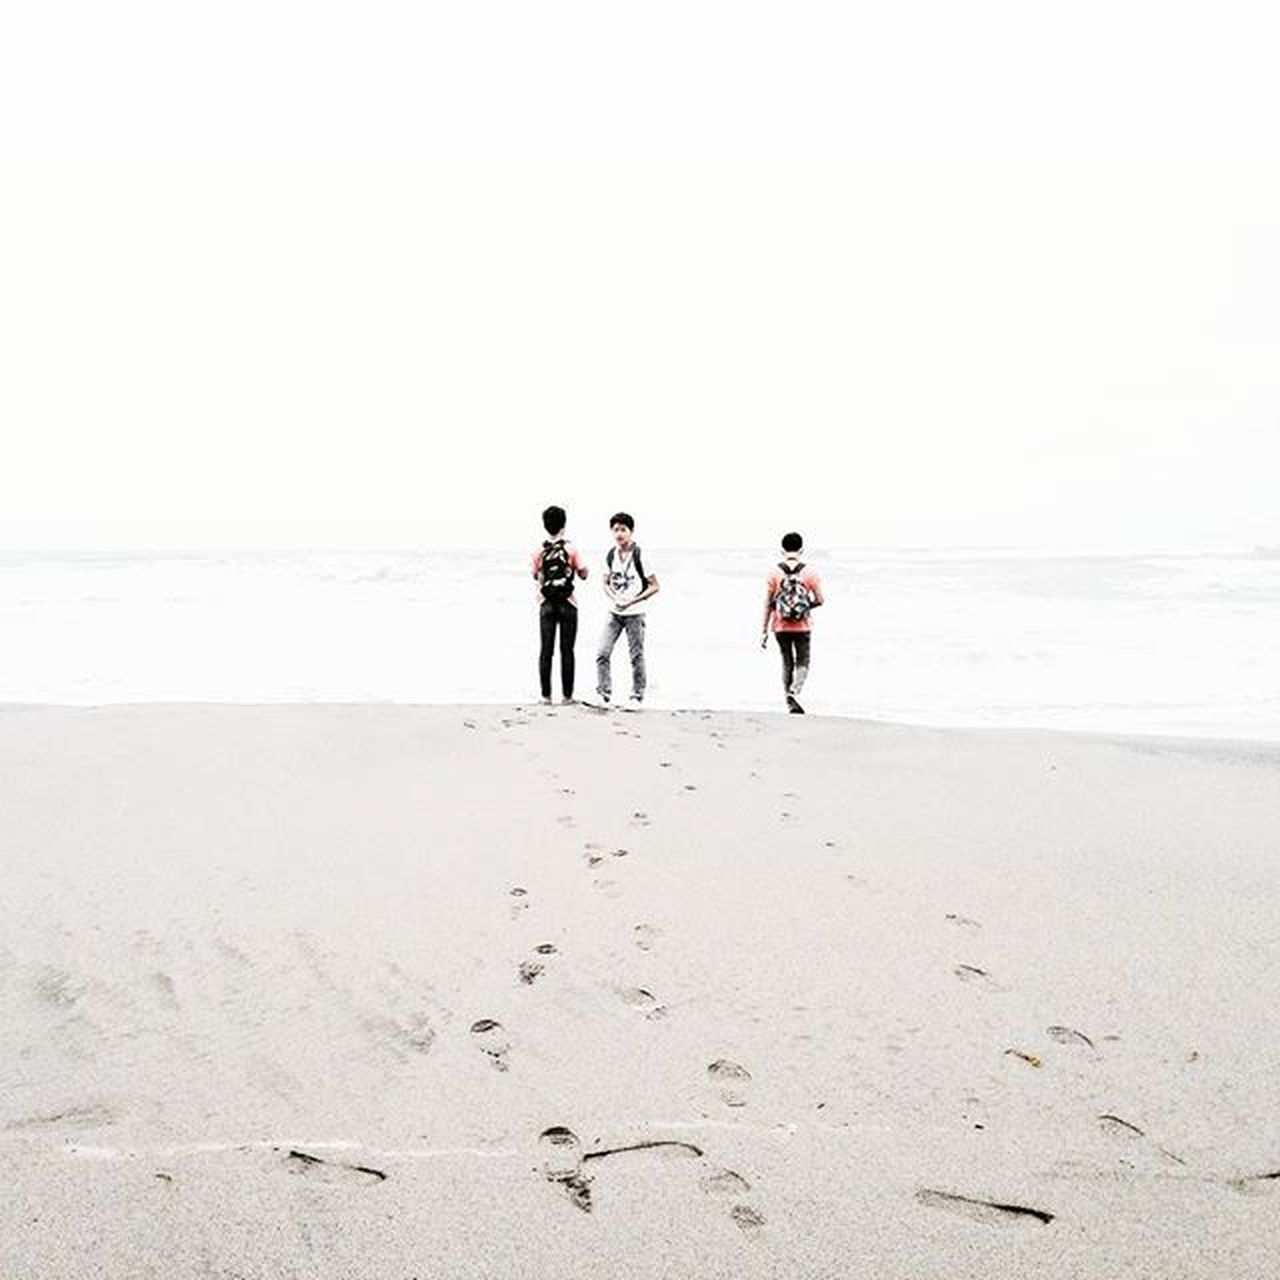 beach, sand, full length, walking, footprint, outdoors, day, togetherness, vacations, people, adult, friendship, adults only, sky, nature, young adult